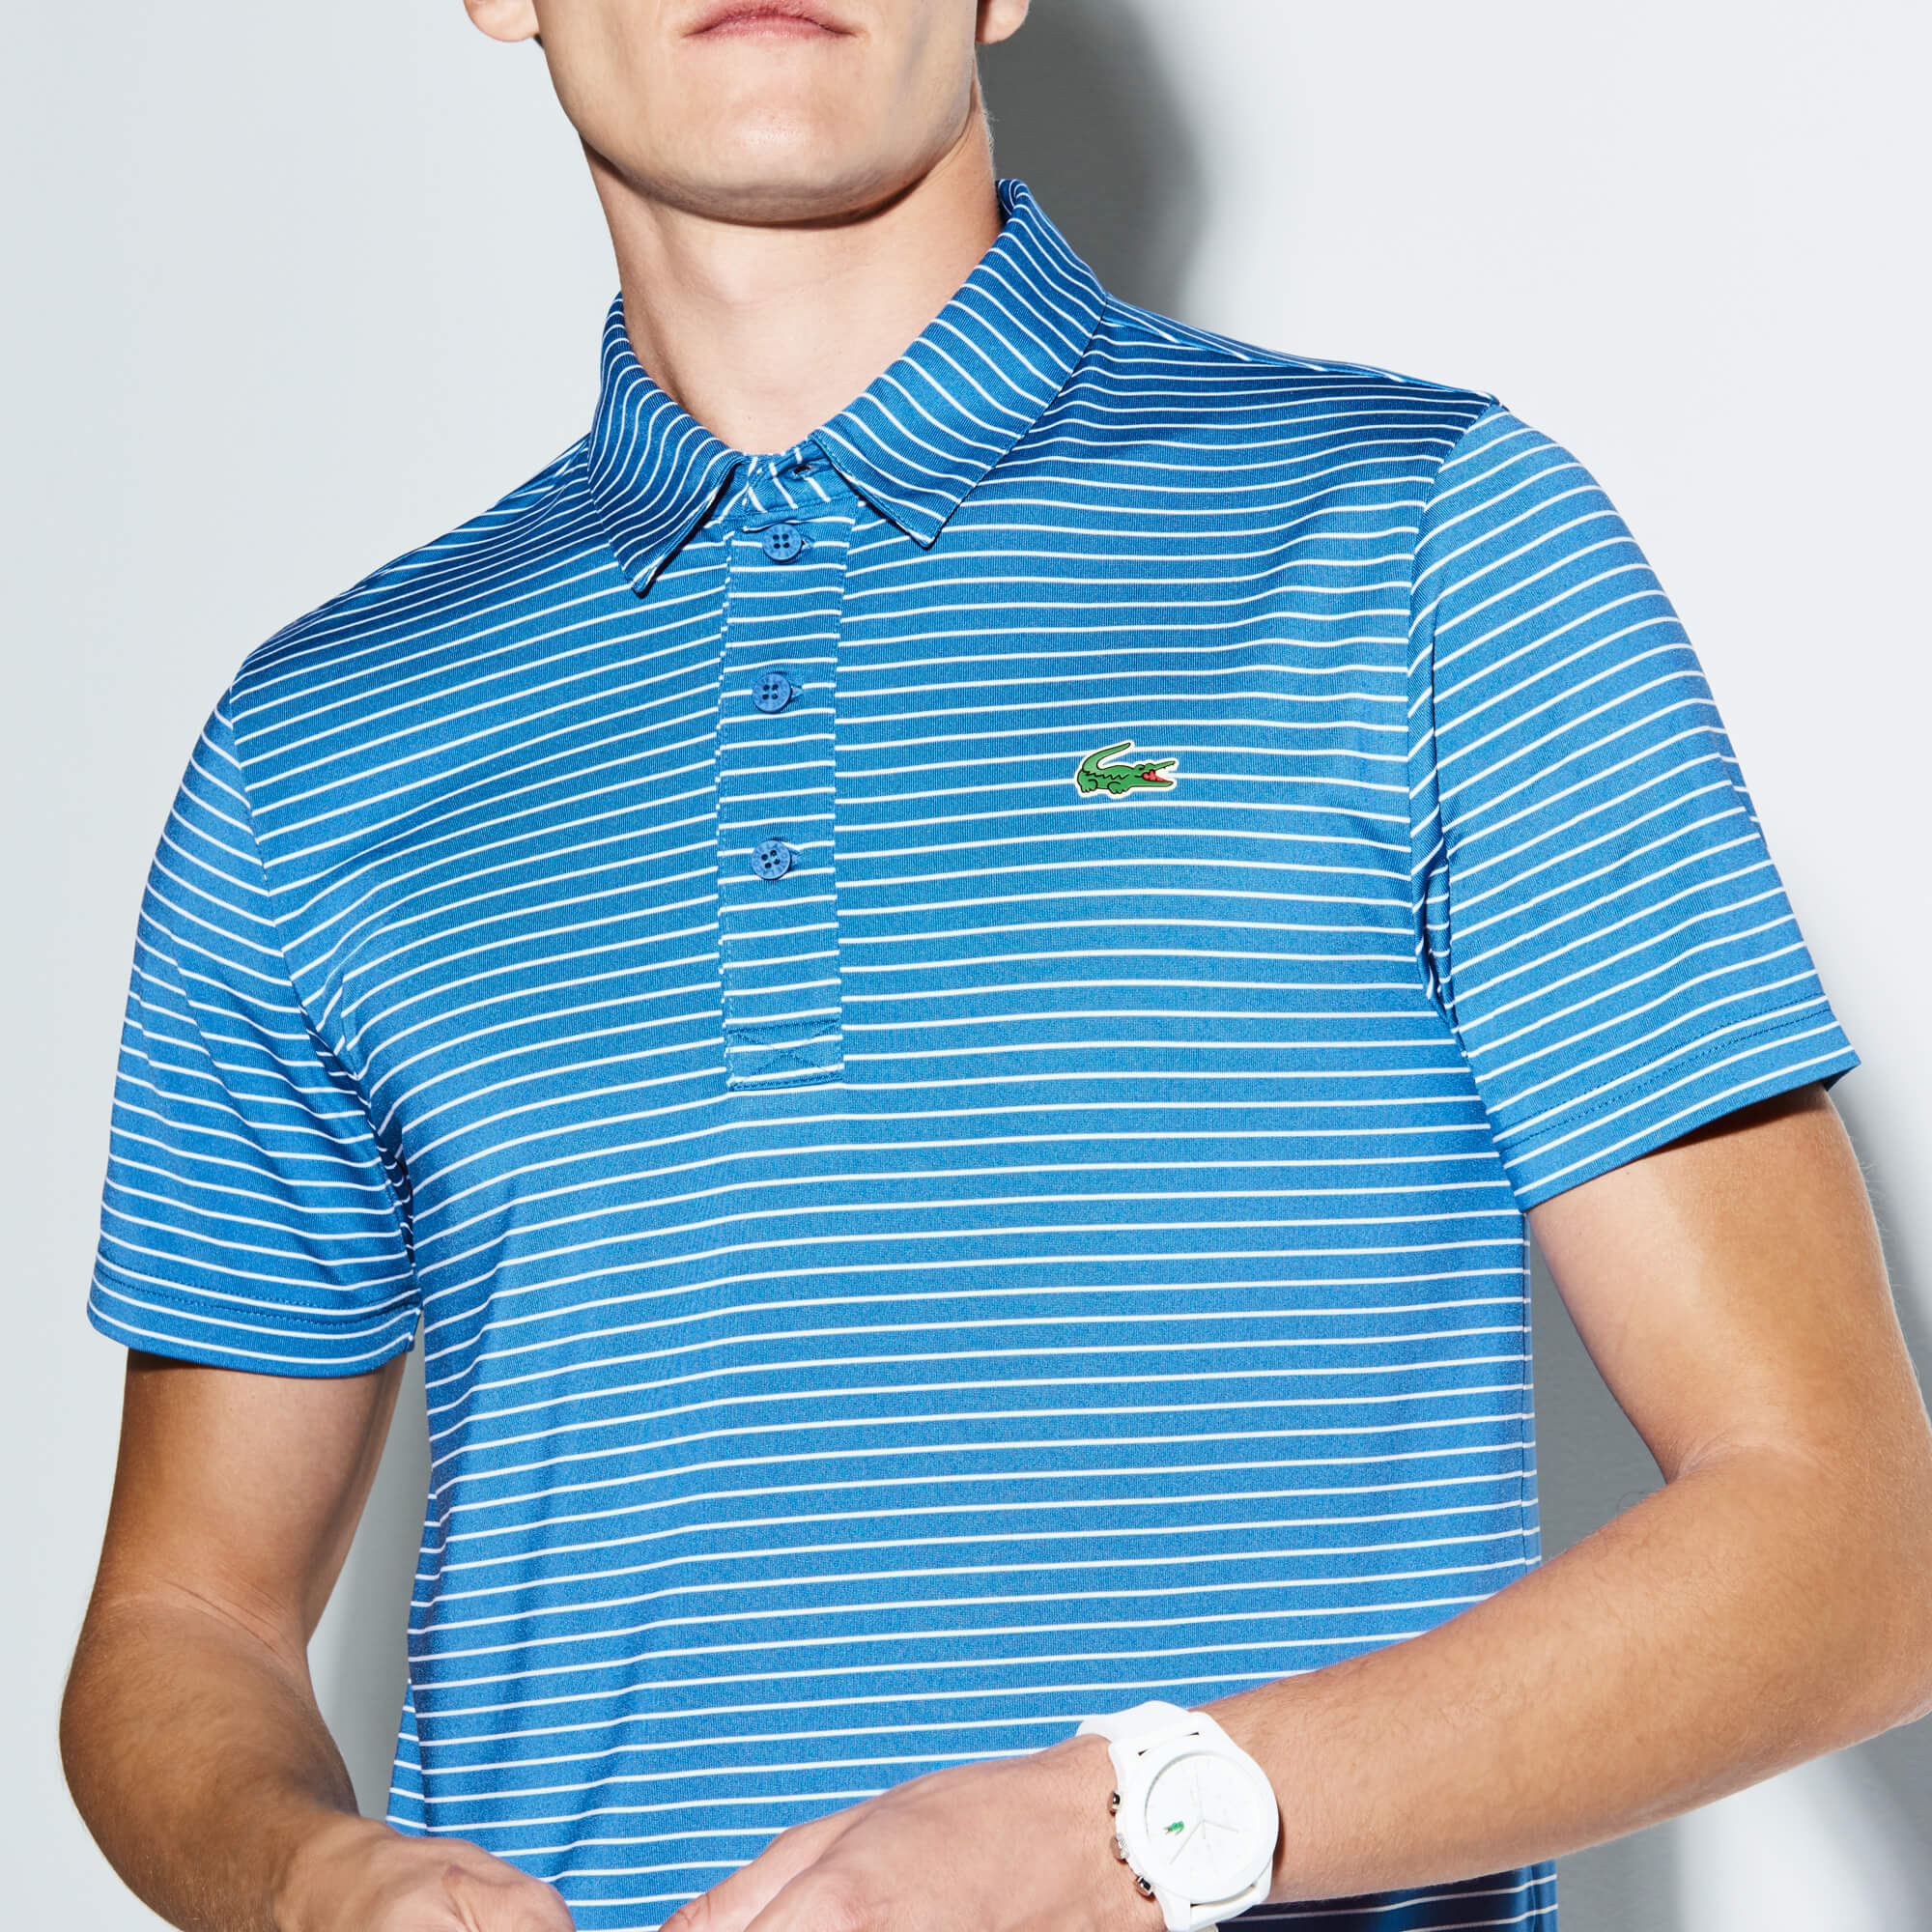 Men's Lacoste SPORT Striped Stretch Technical Jersey Golf Polo Shirt